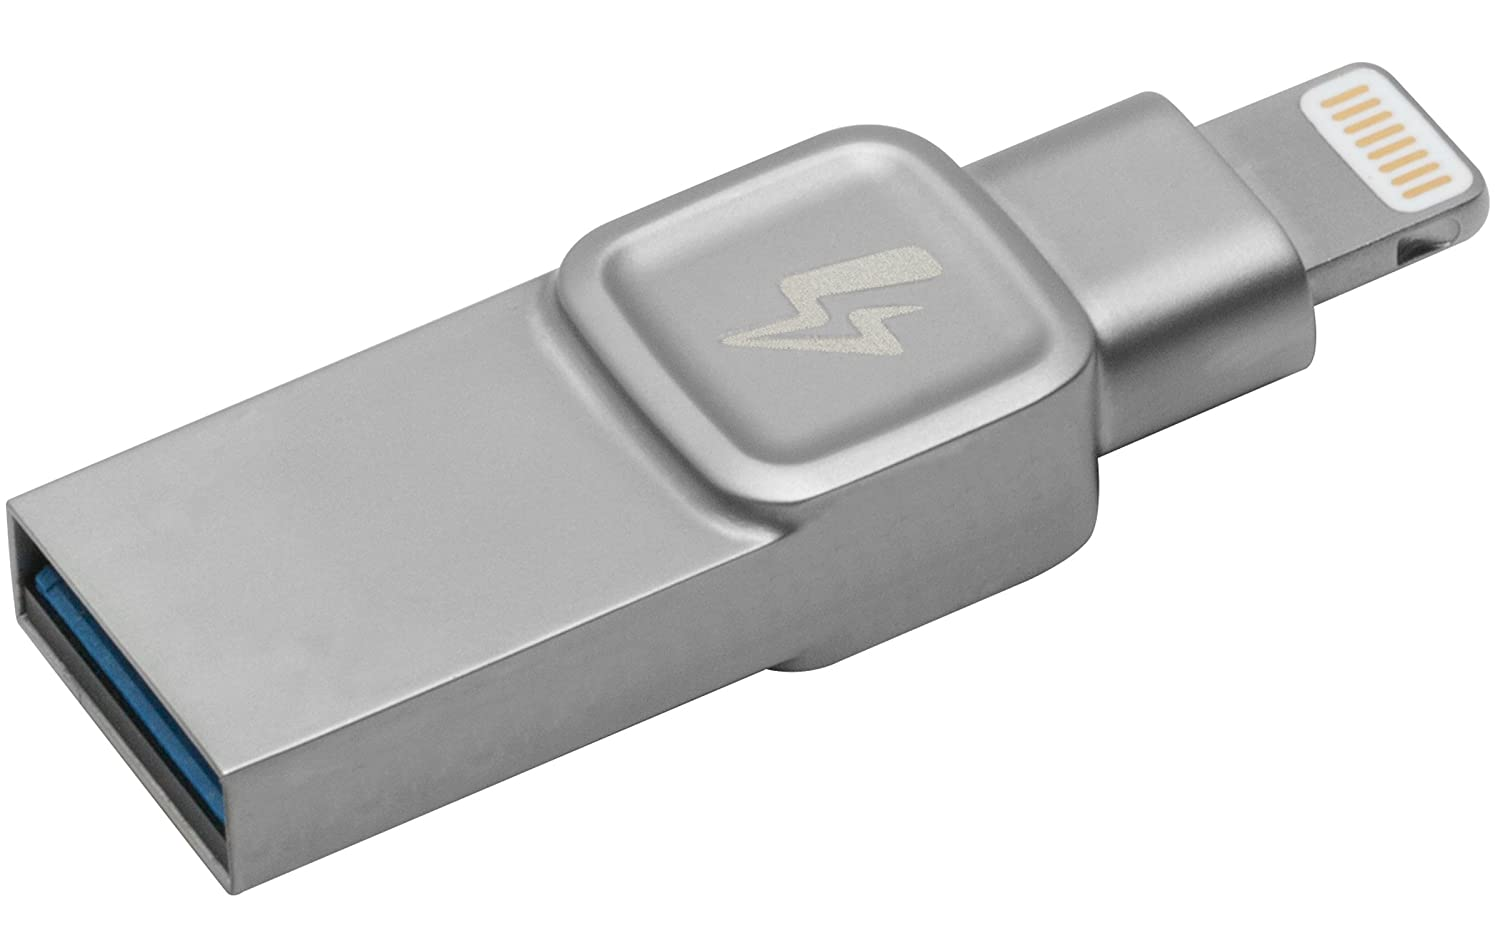 f499cccb270 Kingston Bolt USB 3.0 Flash drive Memory Stick for Apple iPhone & iPads  with iOS 9.0+, External Expandable Memory Storage, DataTraveler Bolt Duo,  ...